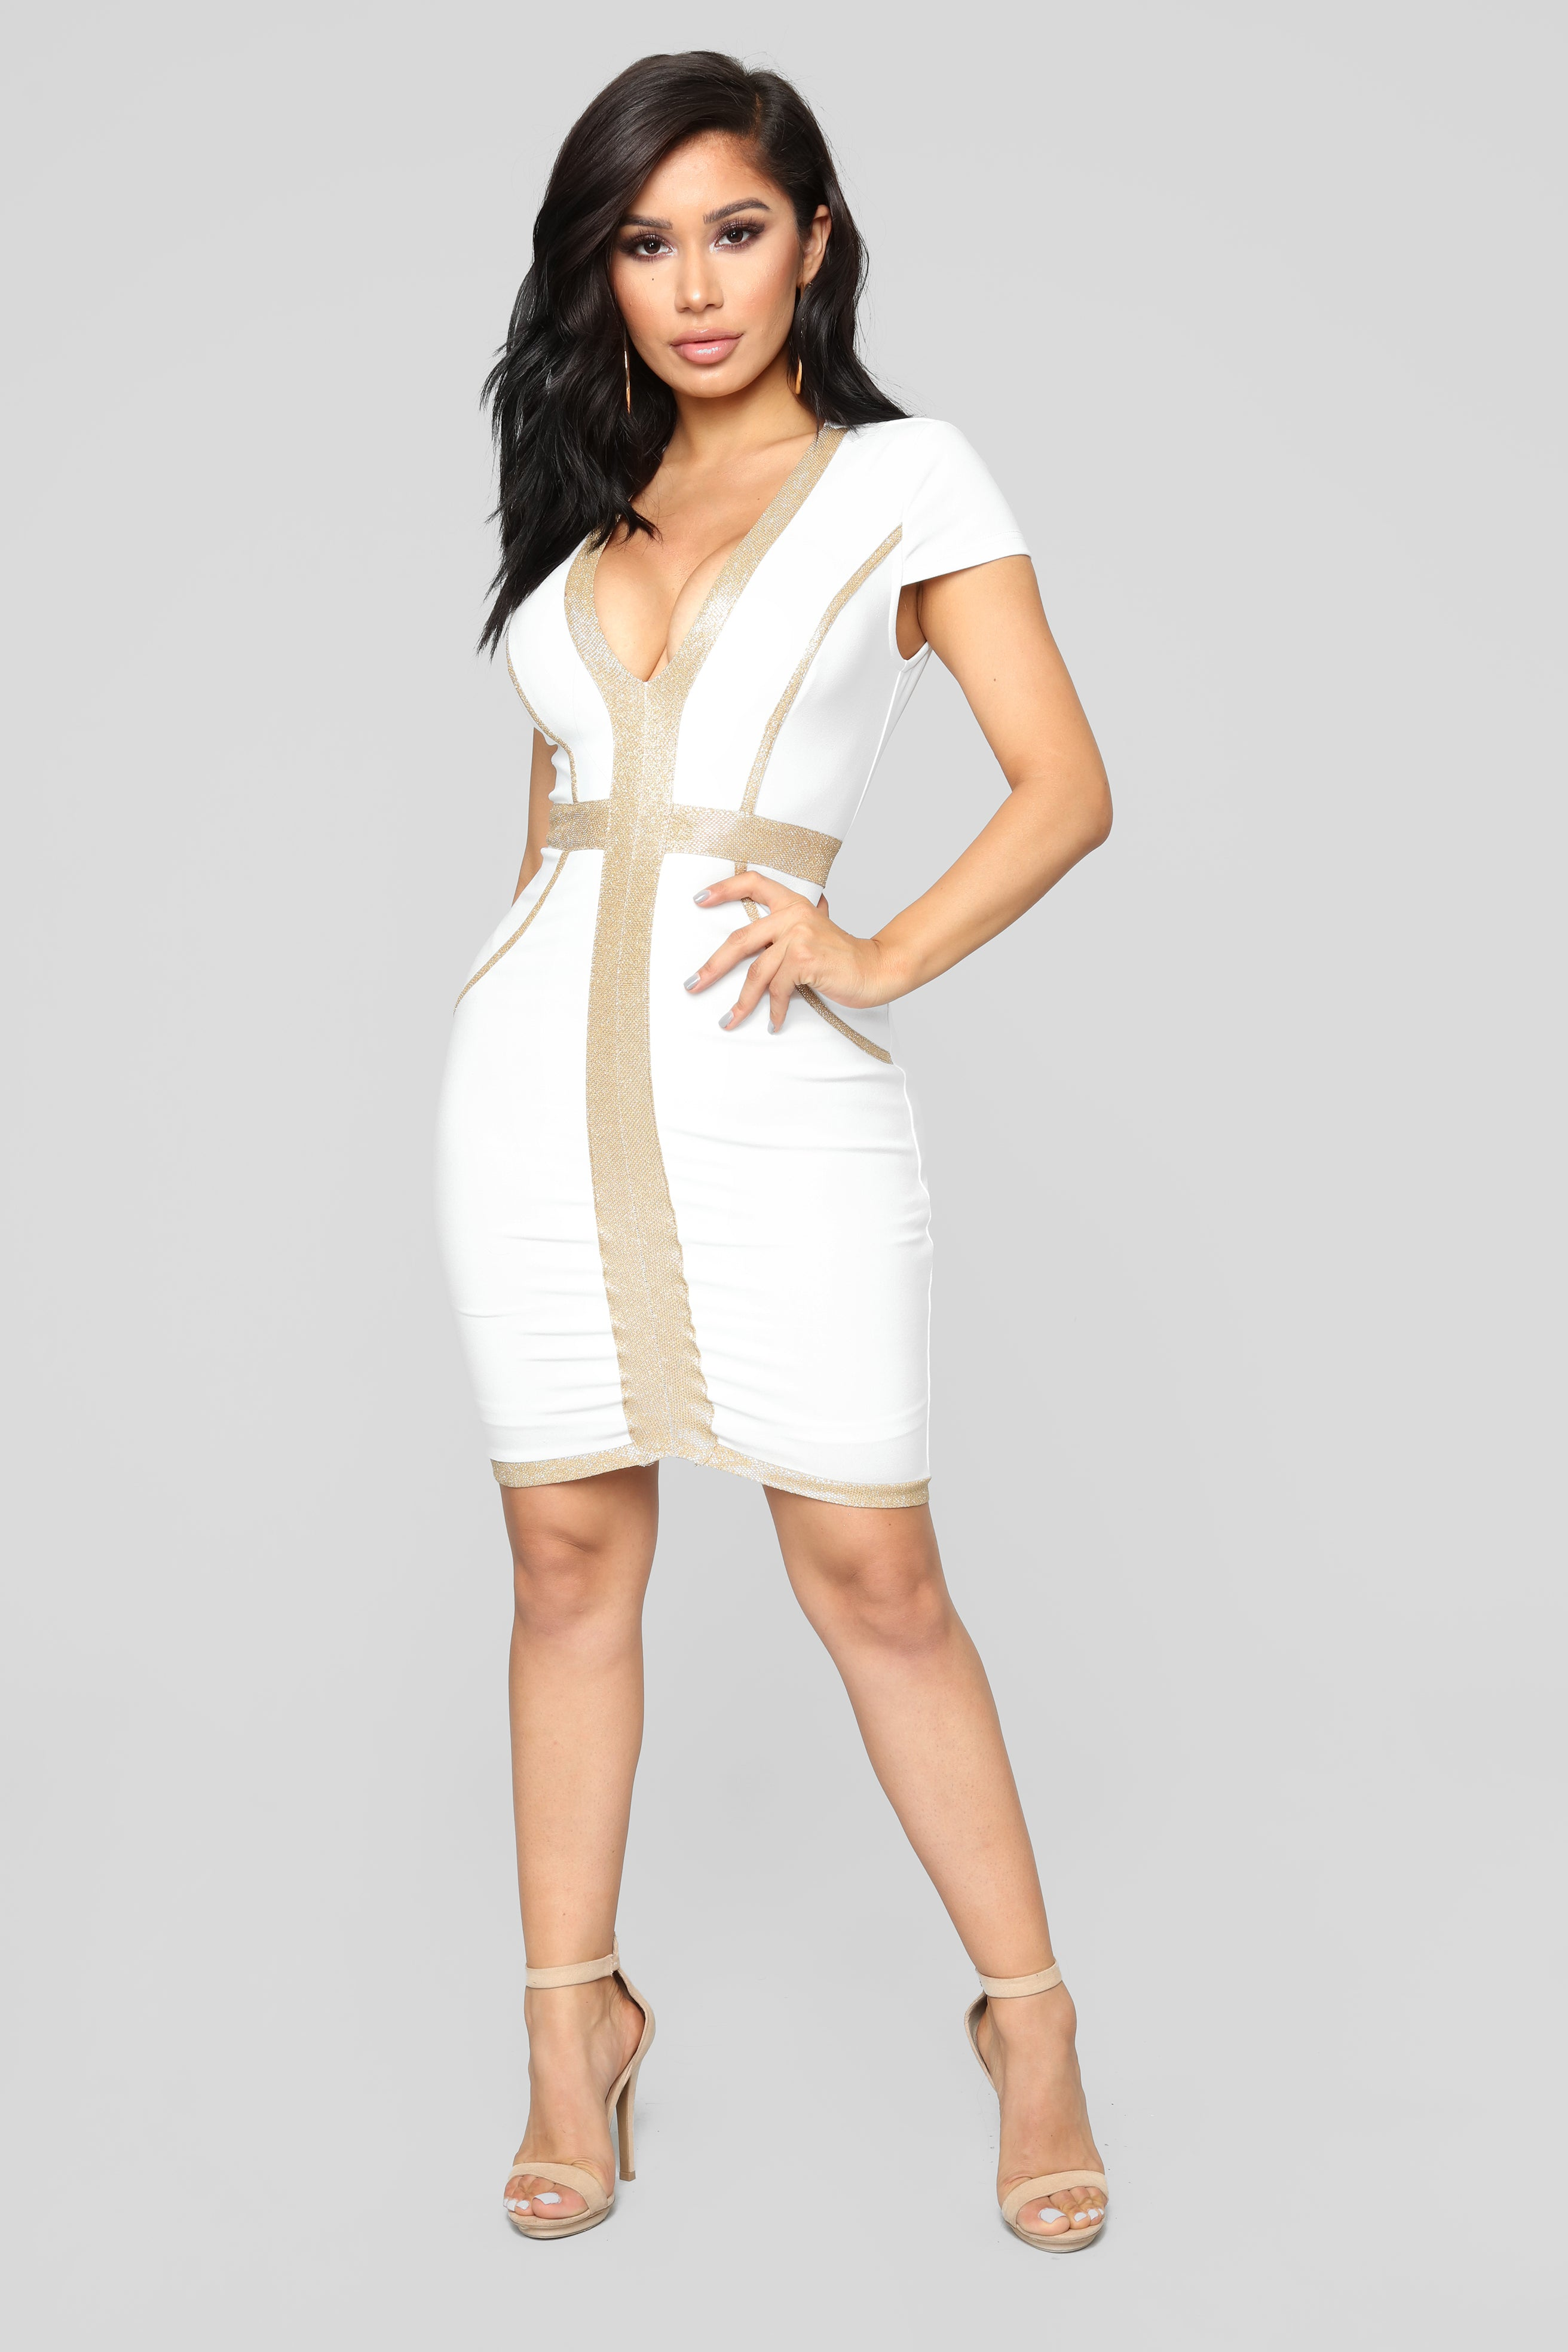 57d959de9bbb5 https://www.fashionnova.com/products/sweet-as-pie-dress-white 2019 ...